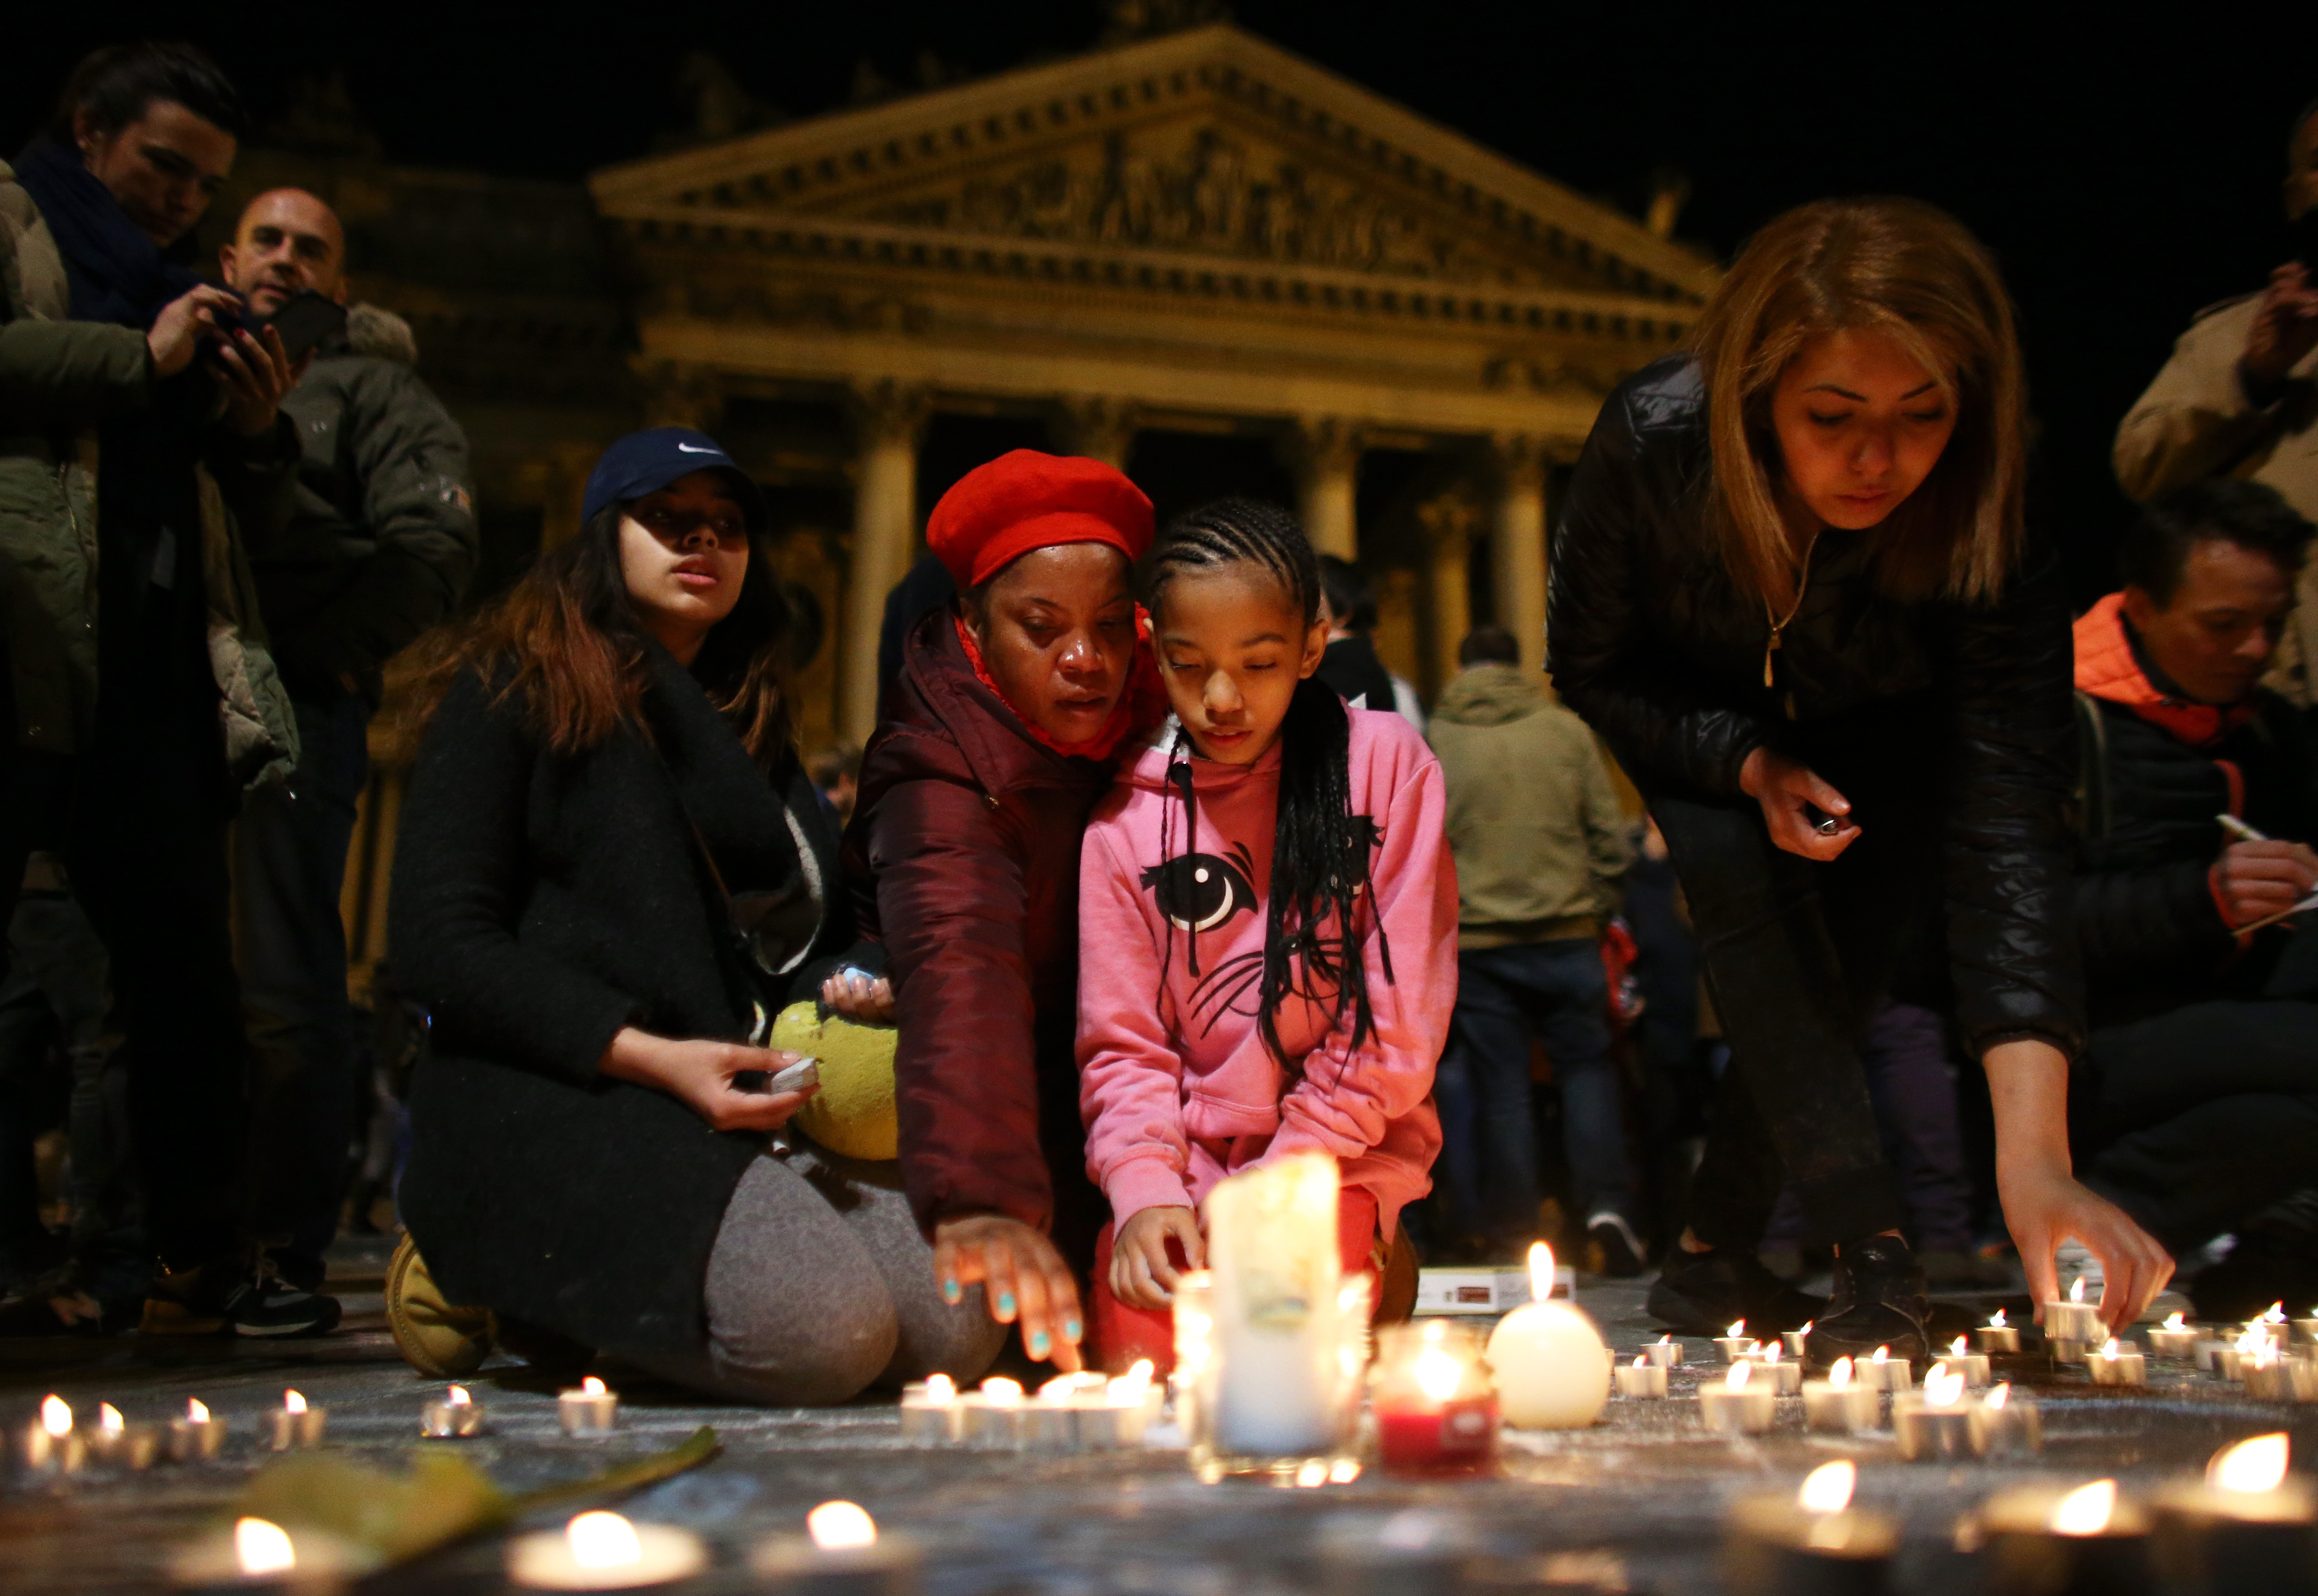 A young girl lights a candle at the Place de la Bourse following the attacks on March 22, 2016 in Brussels, Belgium.